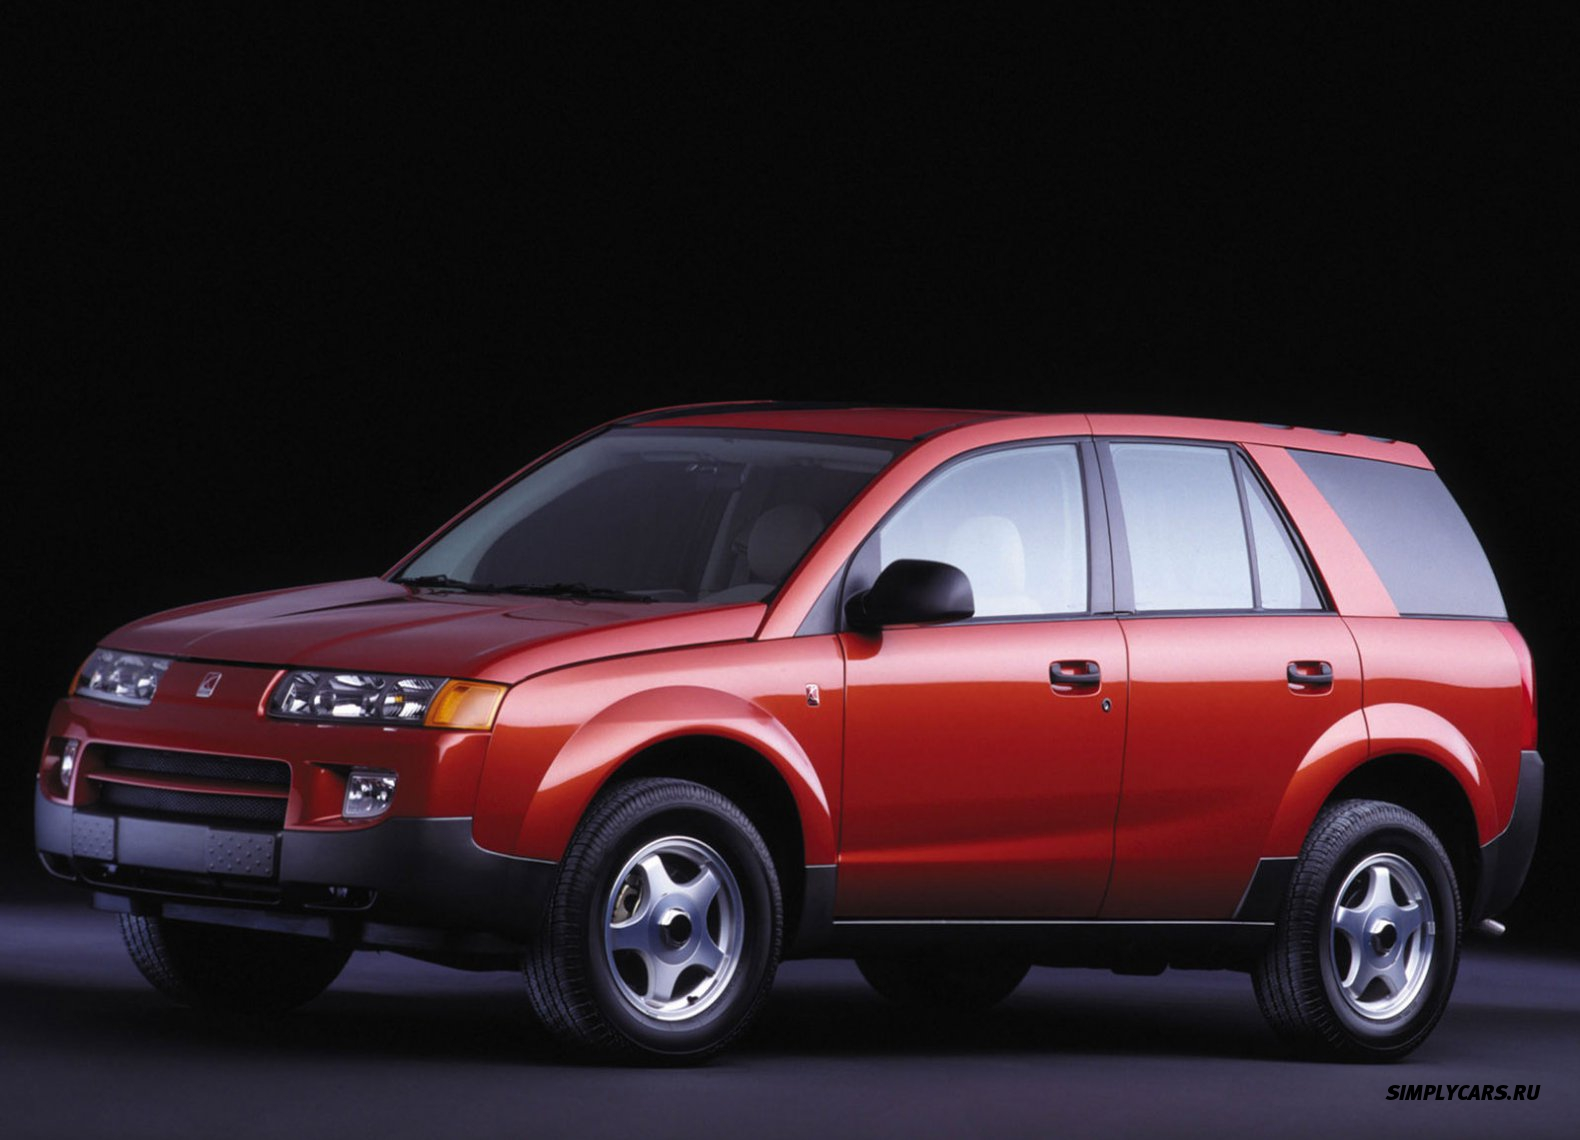 saturn vue Find the best deal on automotive parts at a napa auto parts store near me we have quality car parts in stock for your saturn vue.